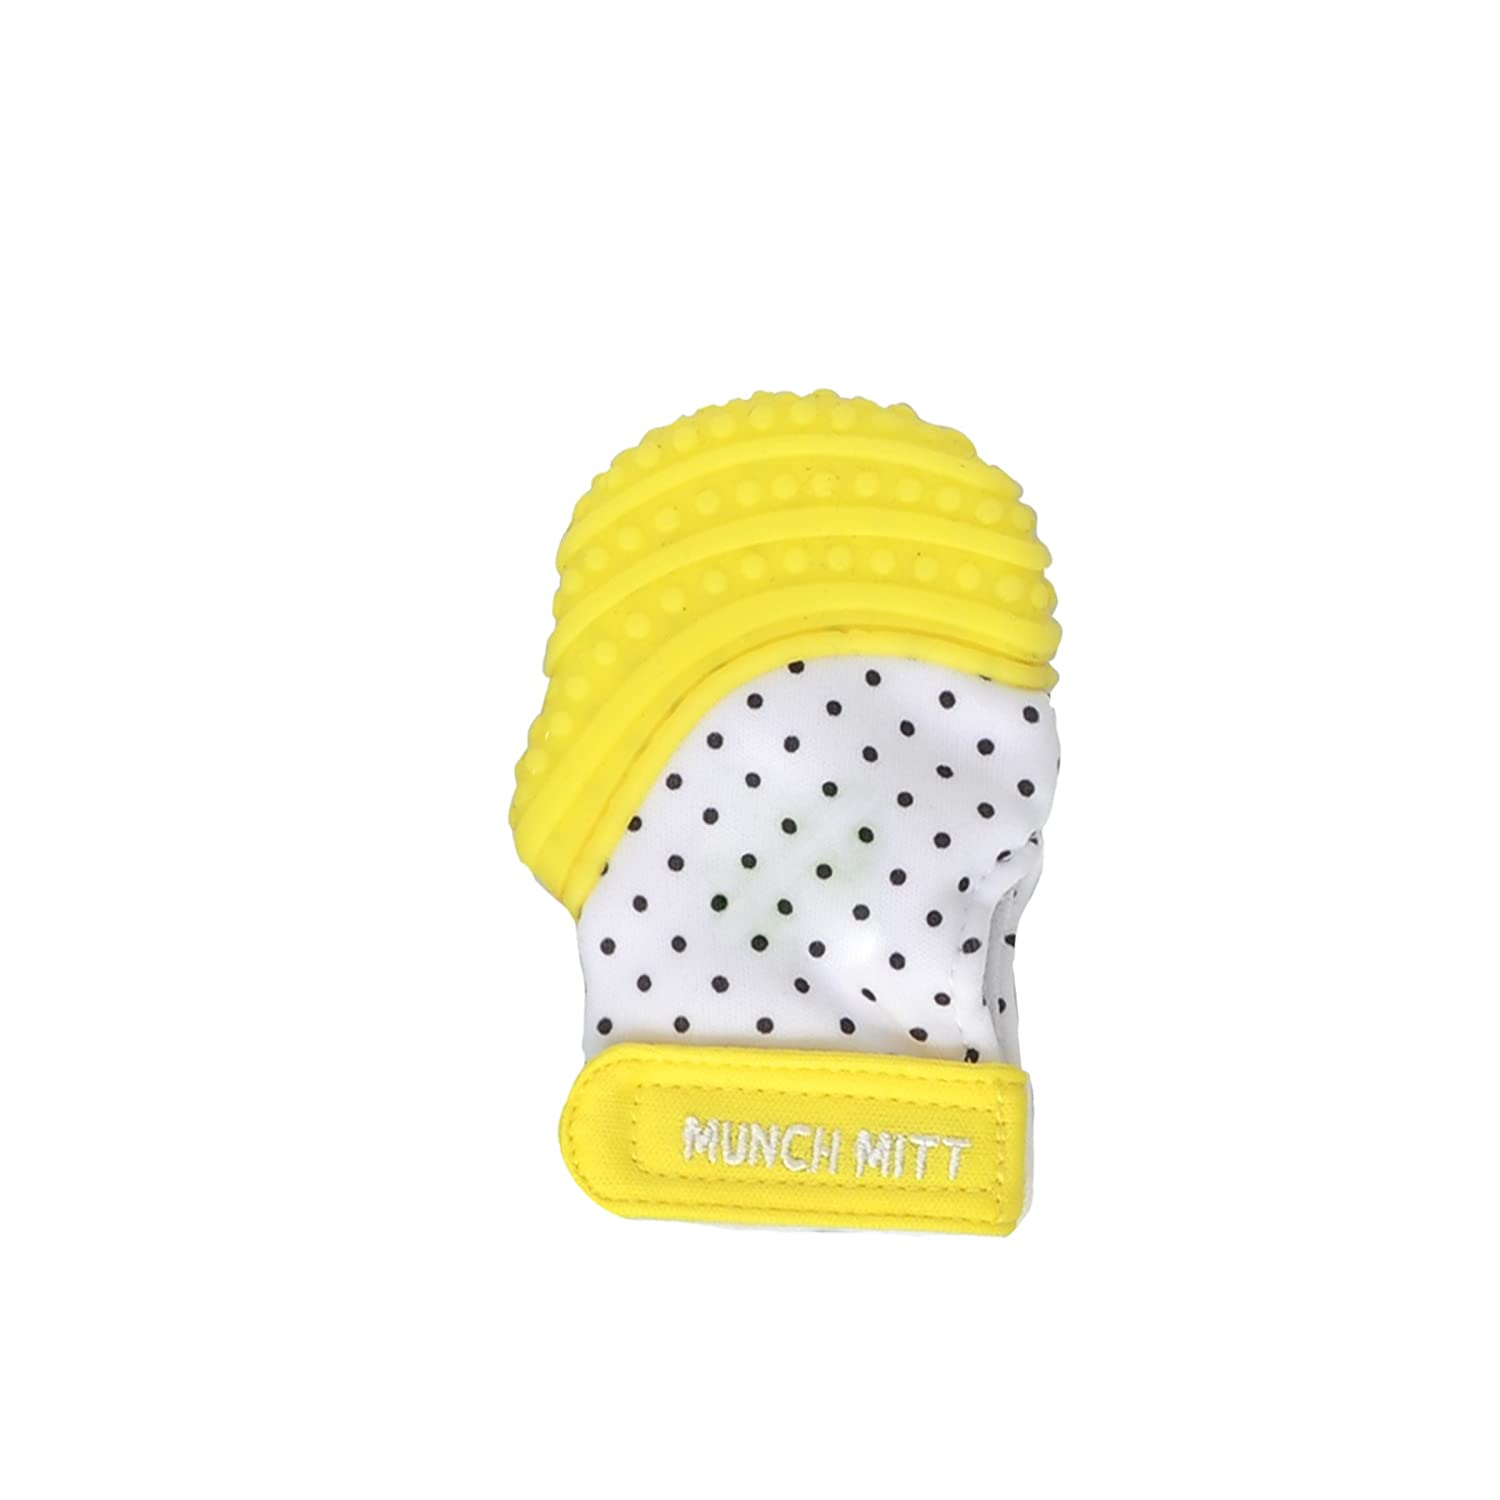 Munch Mitt Mini Baby Teething Mitten - Yellow